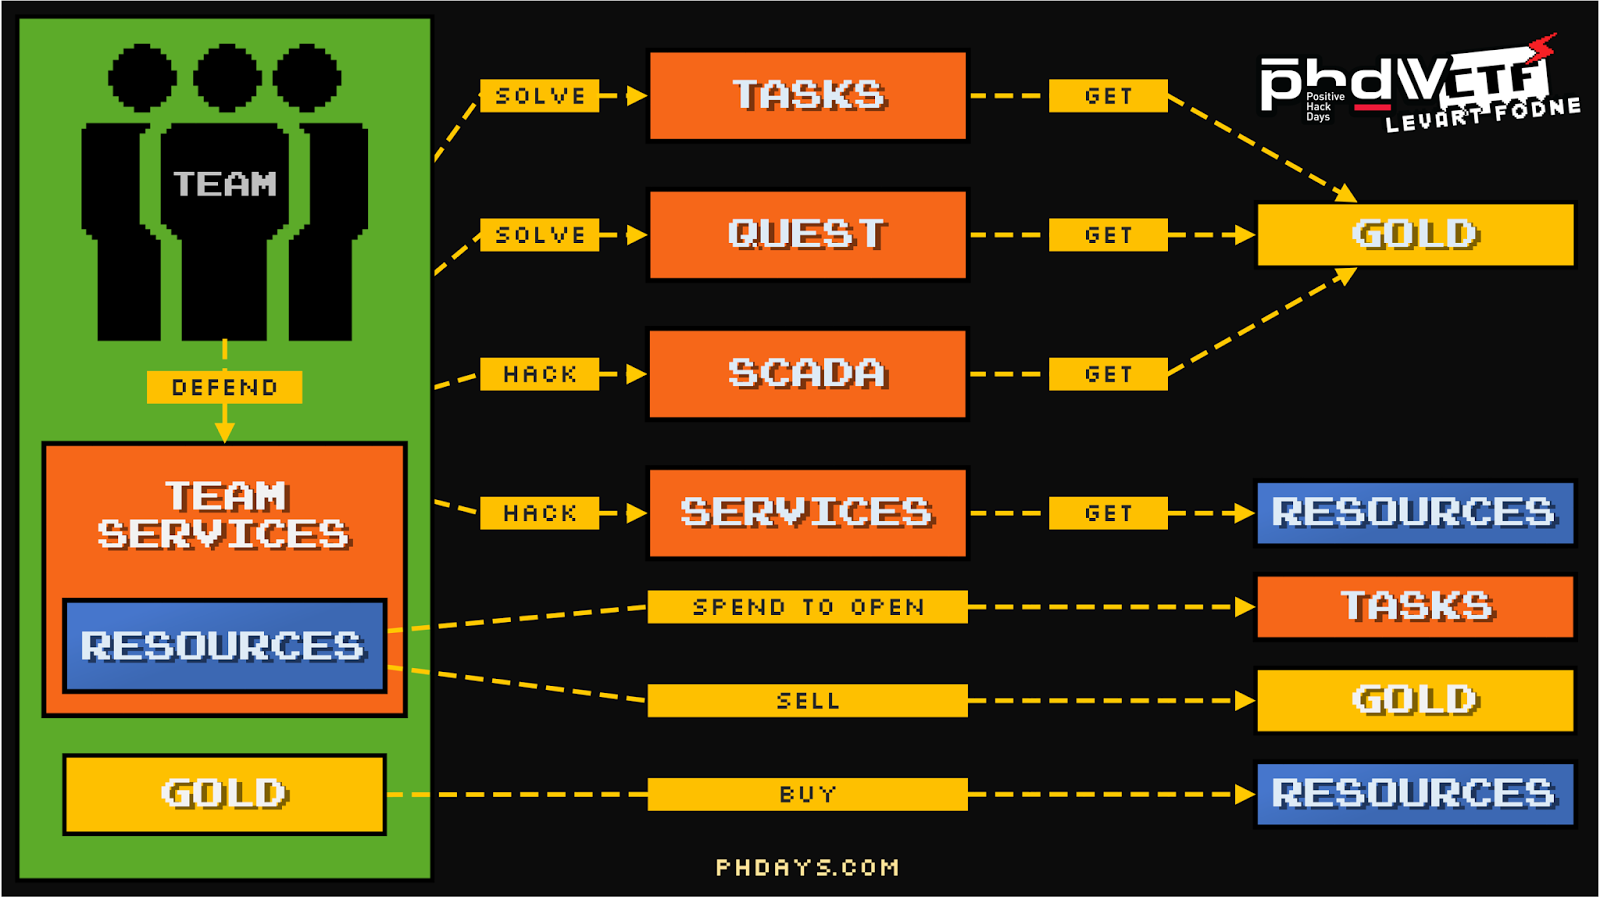 Dragon Sector: Update: Dragon Sector wins the PHDays CTF